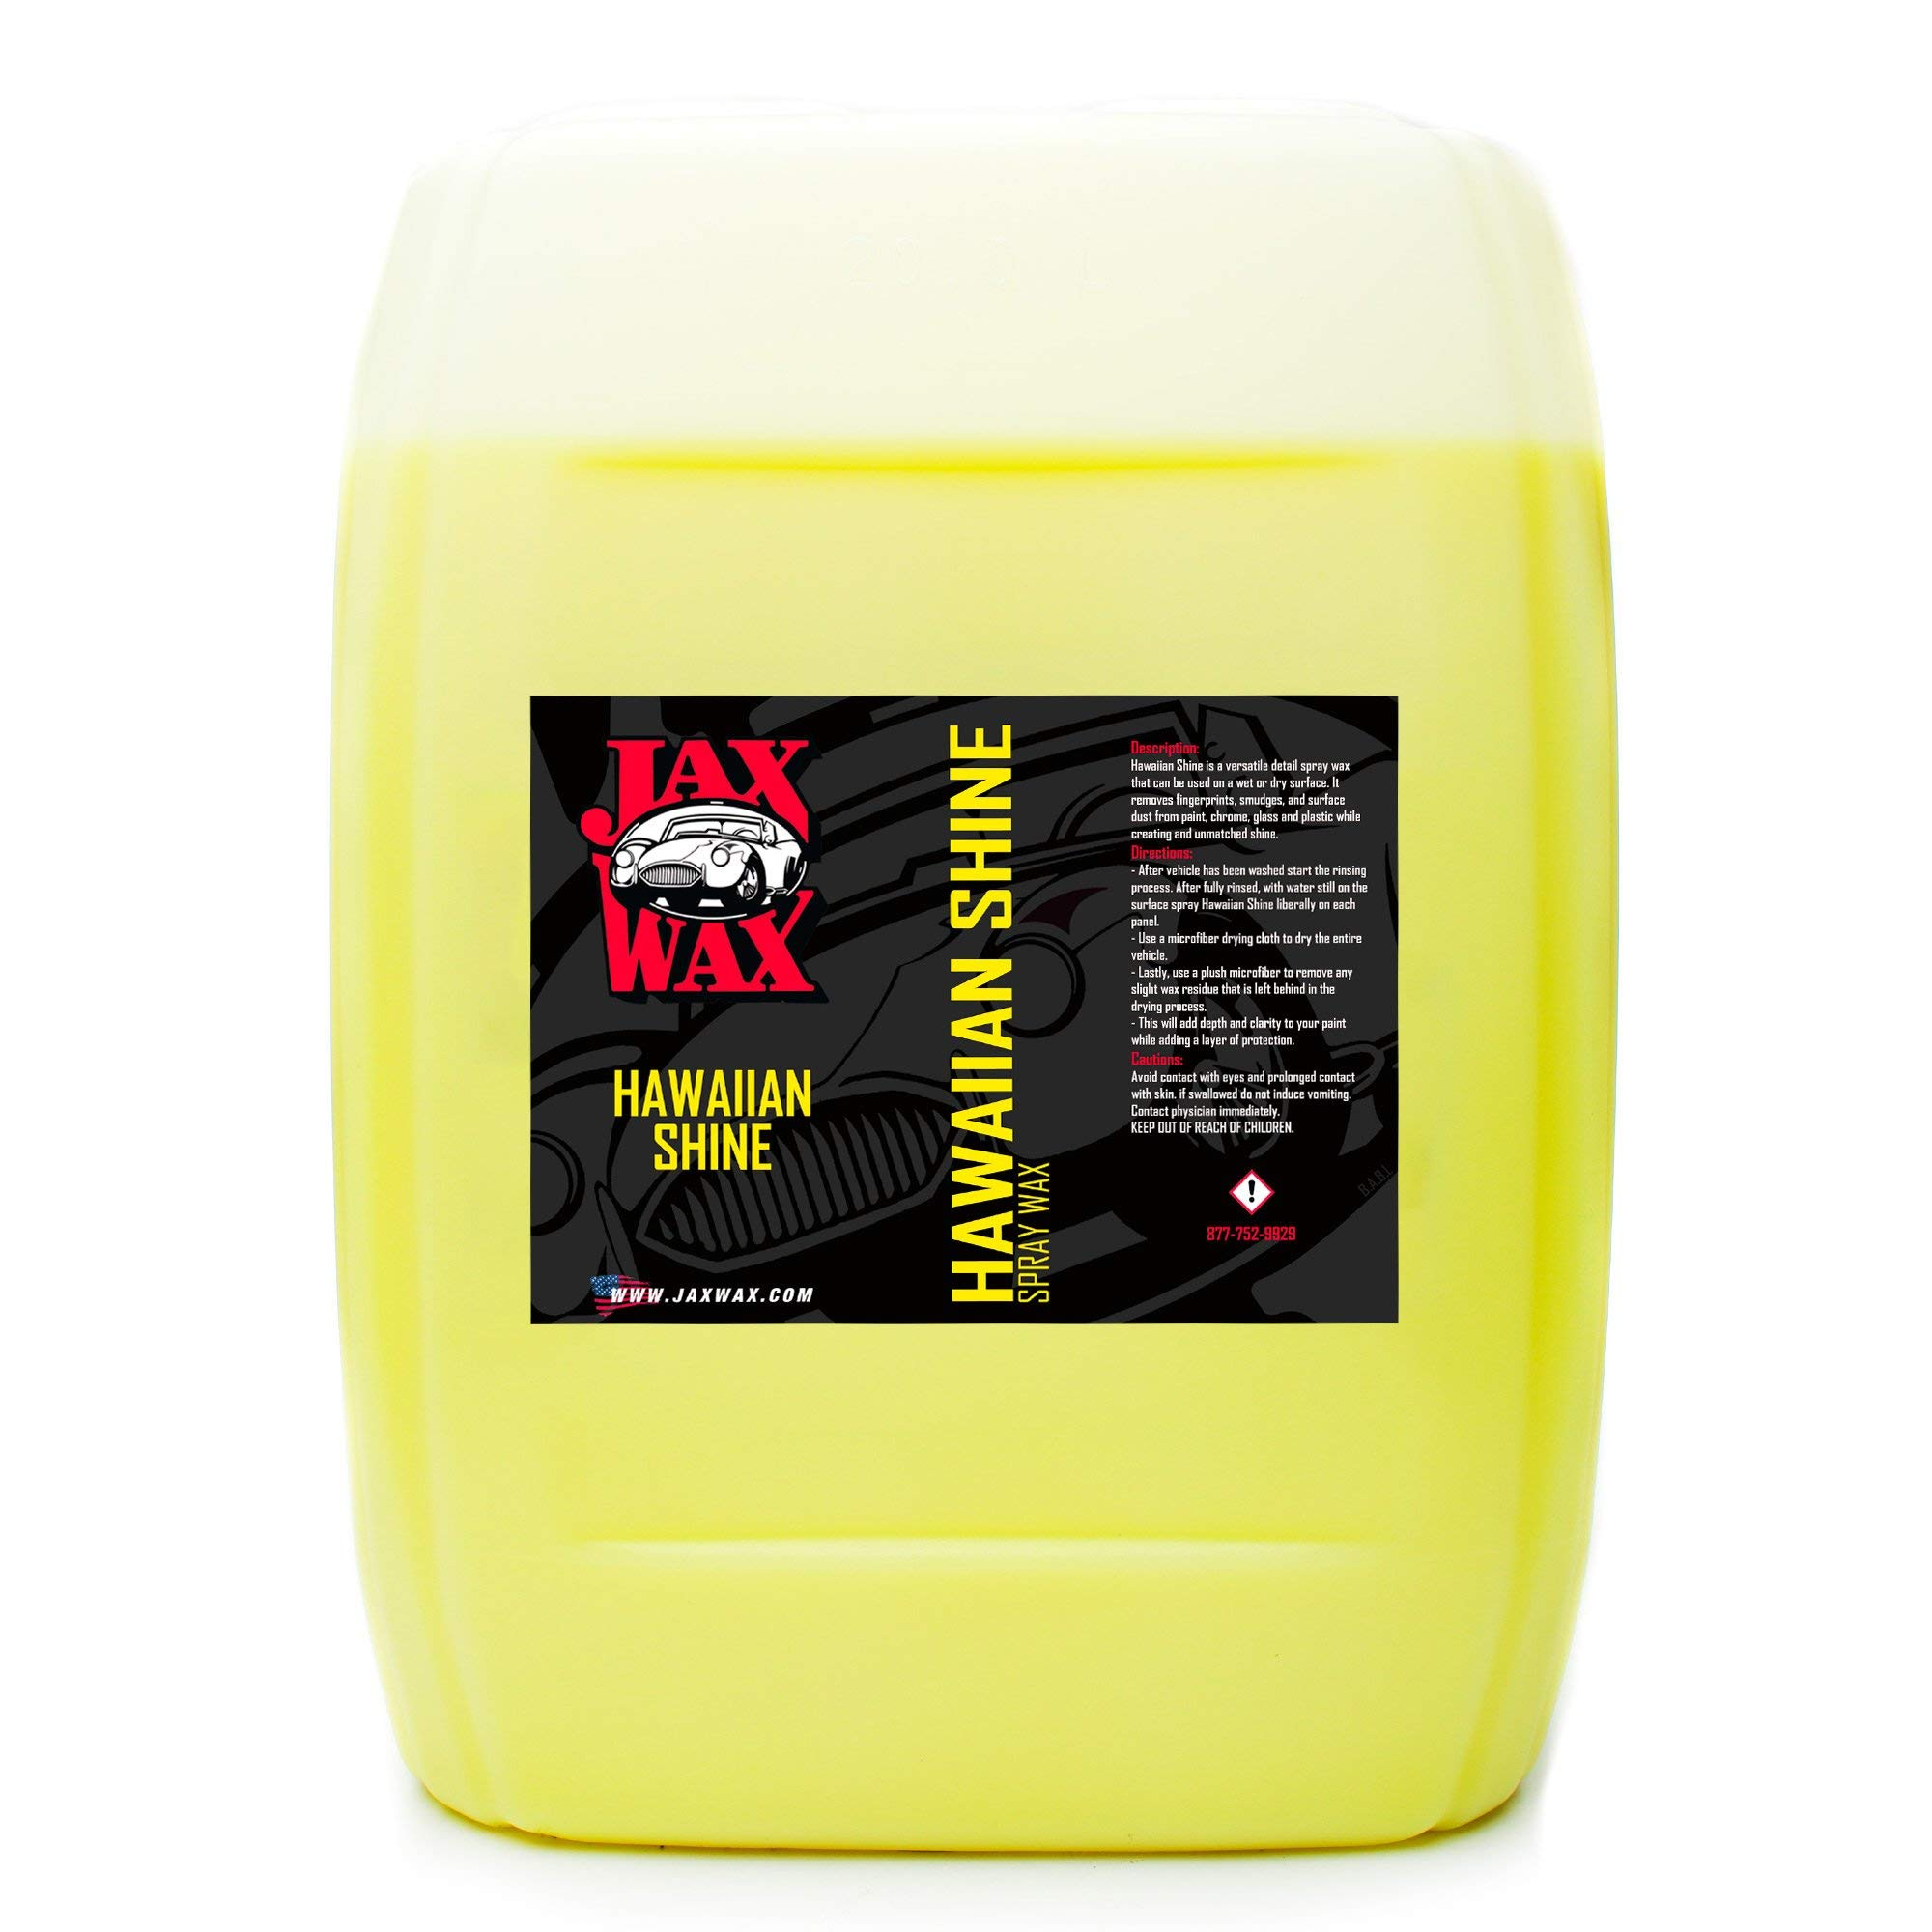 Jax Wax Hawaiian Shine Carnauba Car Wax - Quick Detail Spray - 5 Gallon